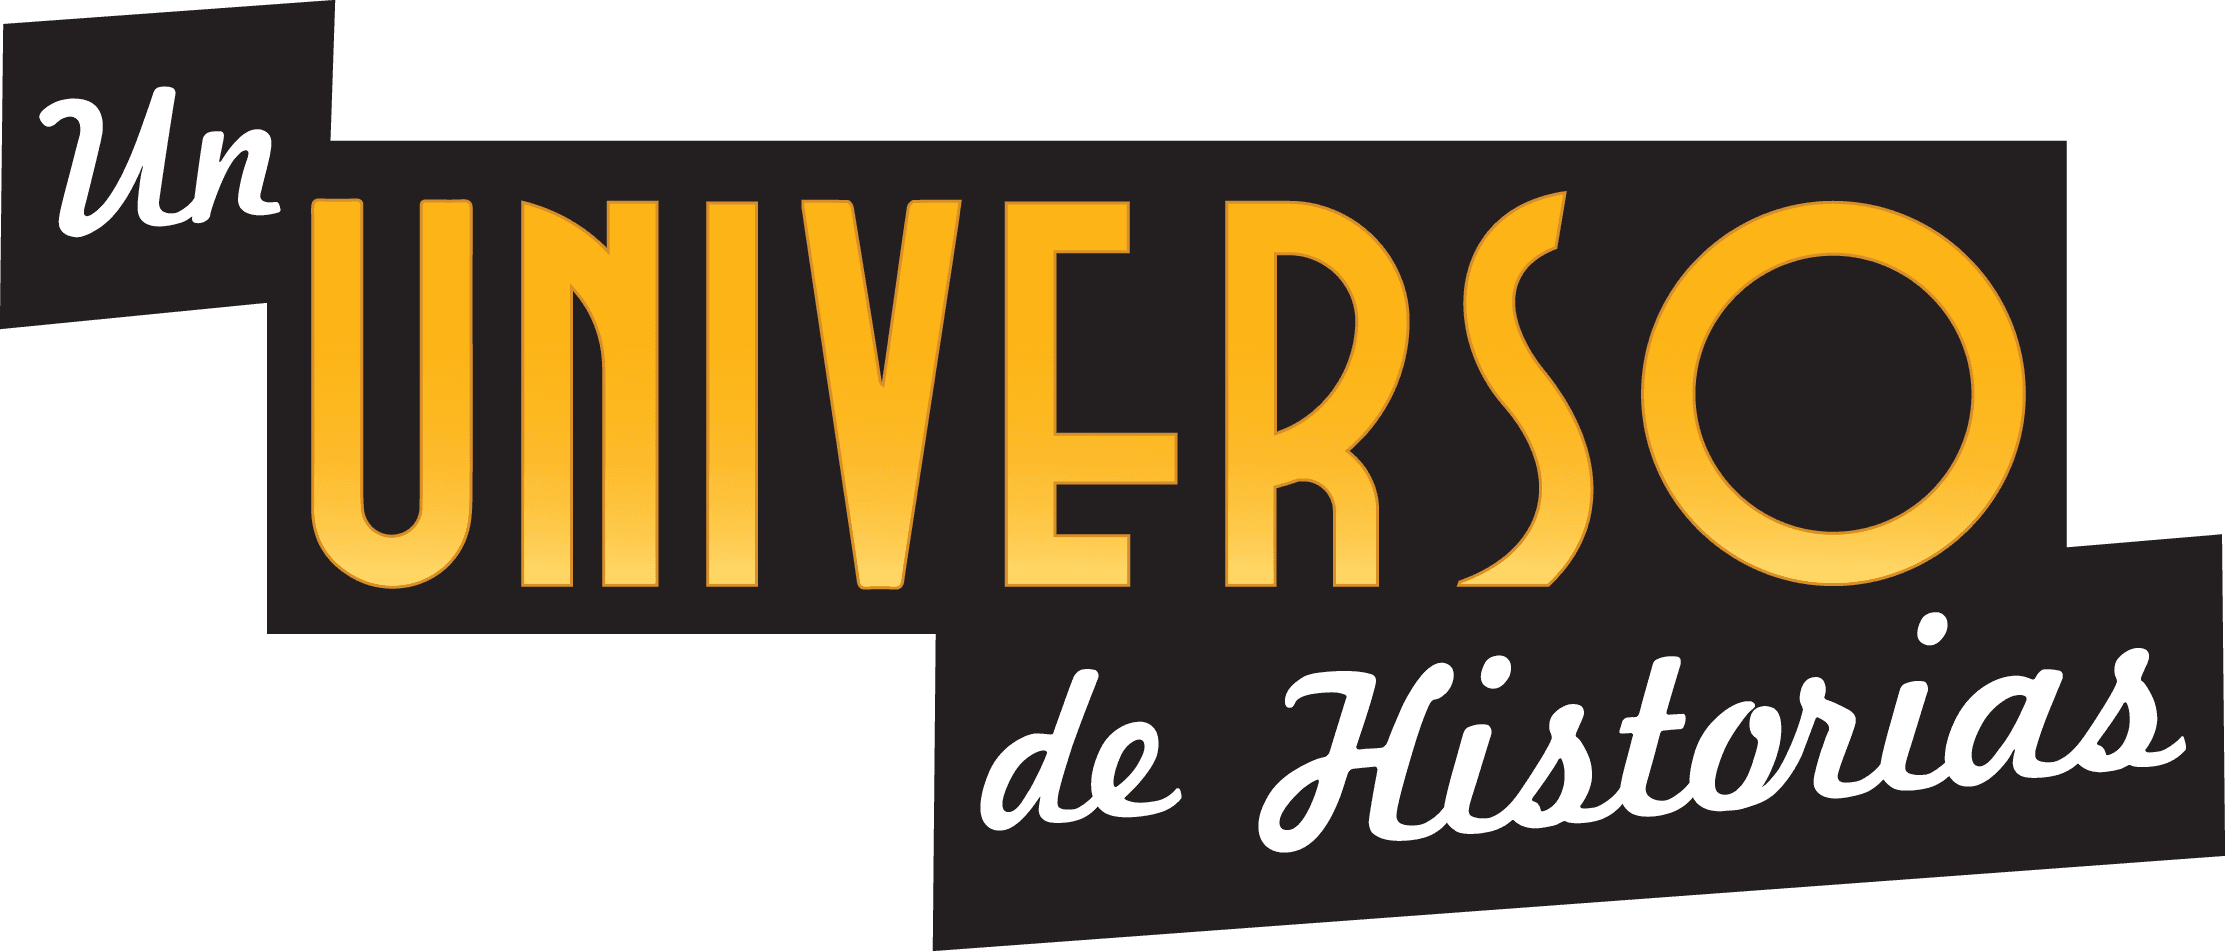 A Universe of Stories slogan in Spanish